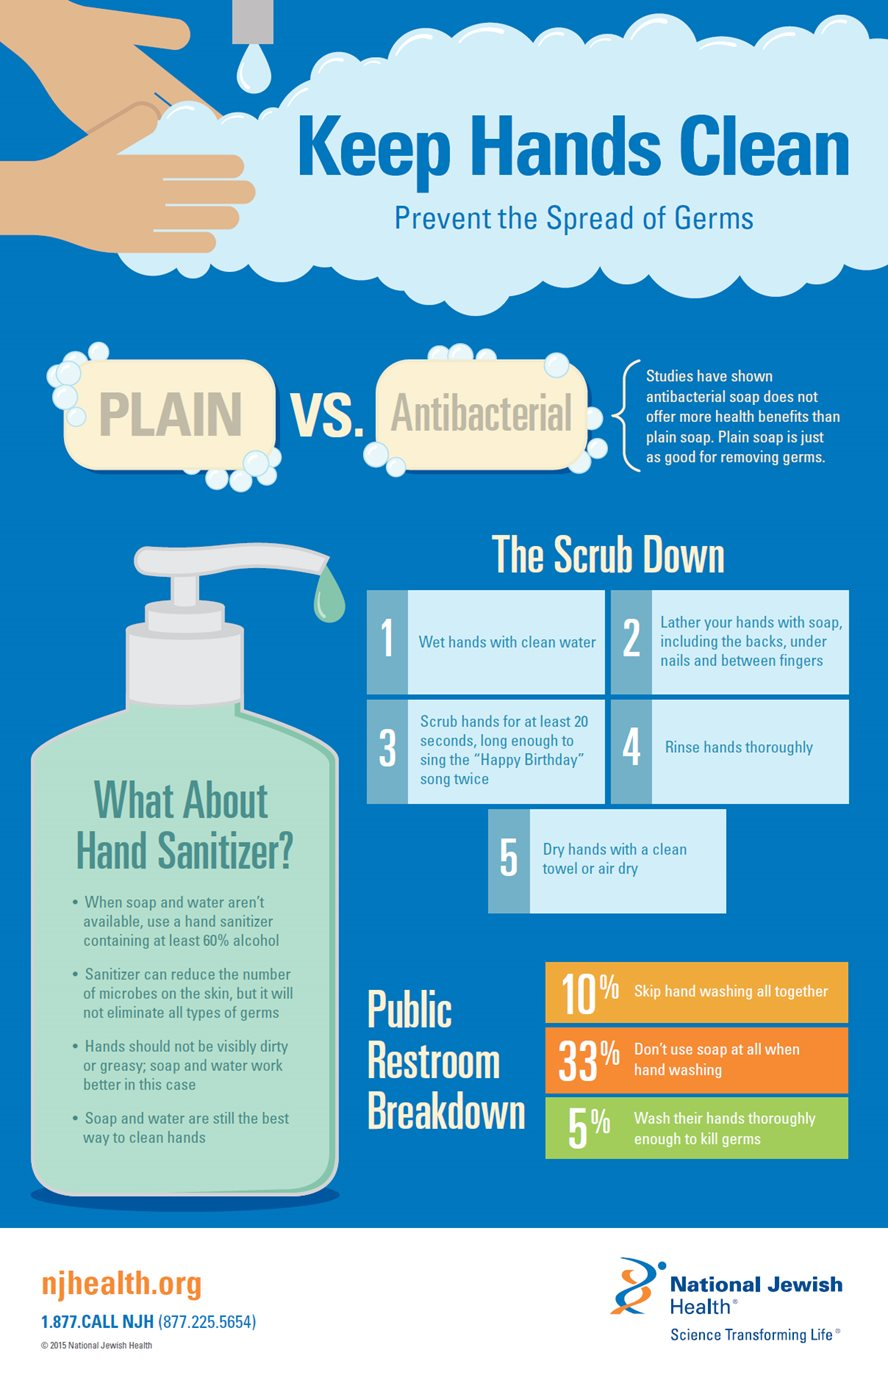 Keep Hands Clean, Prevent the Spread of Germs Infographic